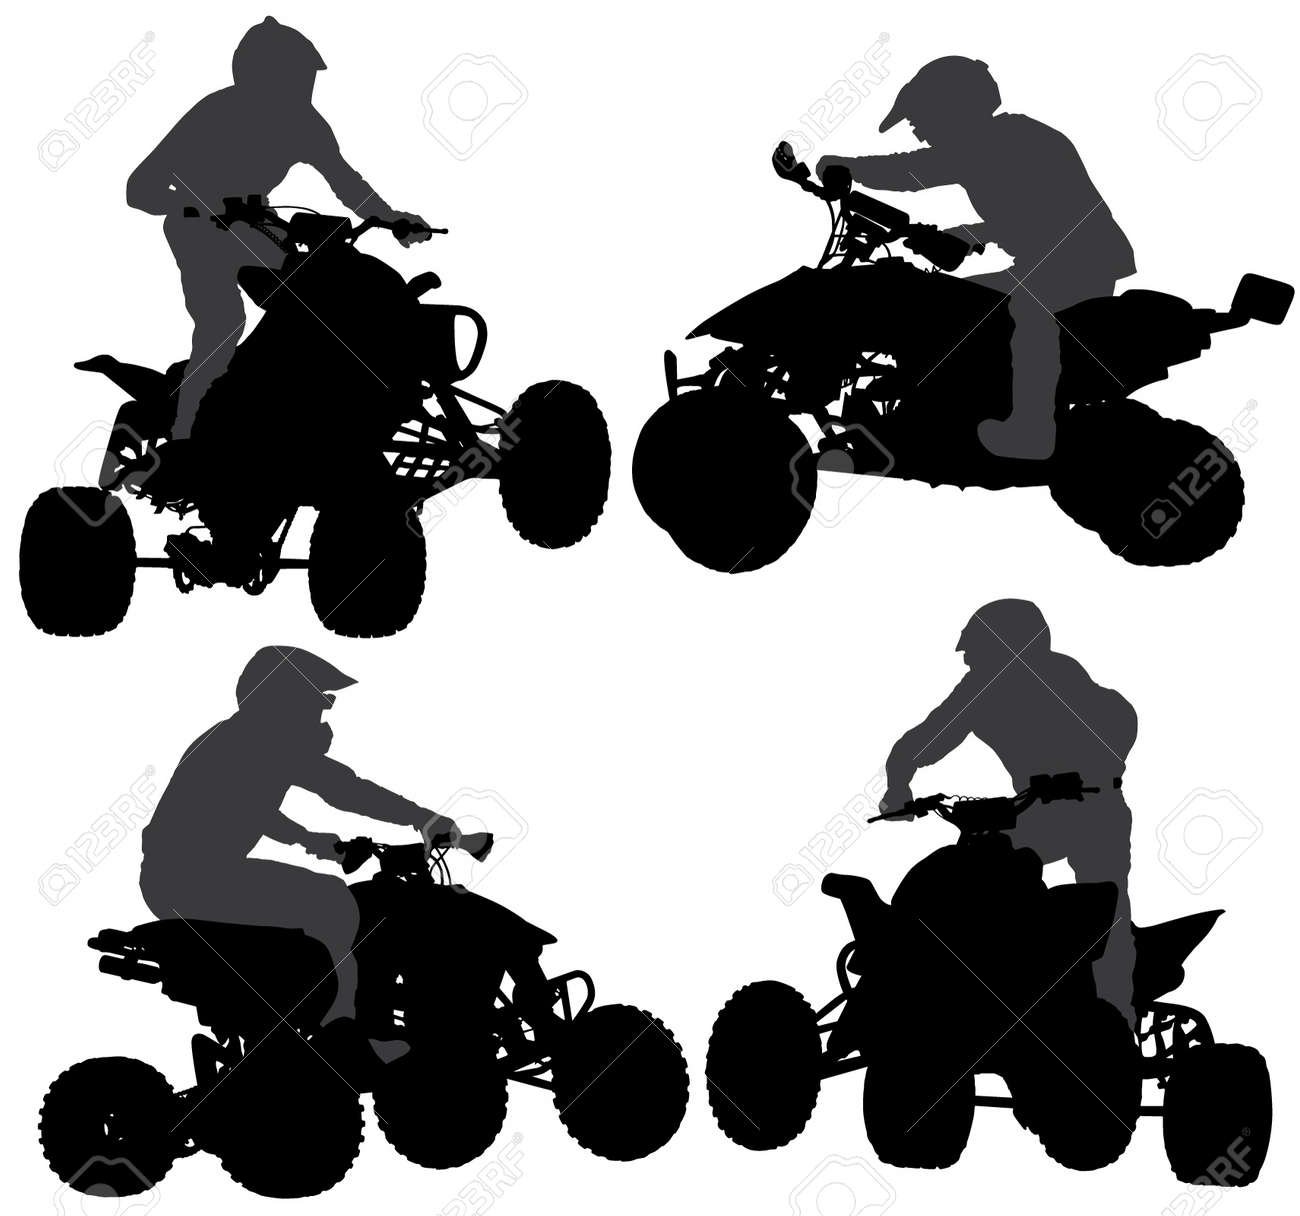 quadbike silhouette on white background royalty free cliparts rh 123rf com